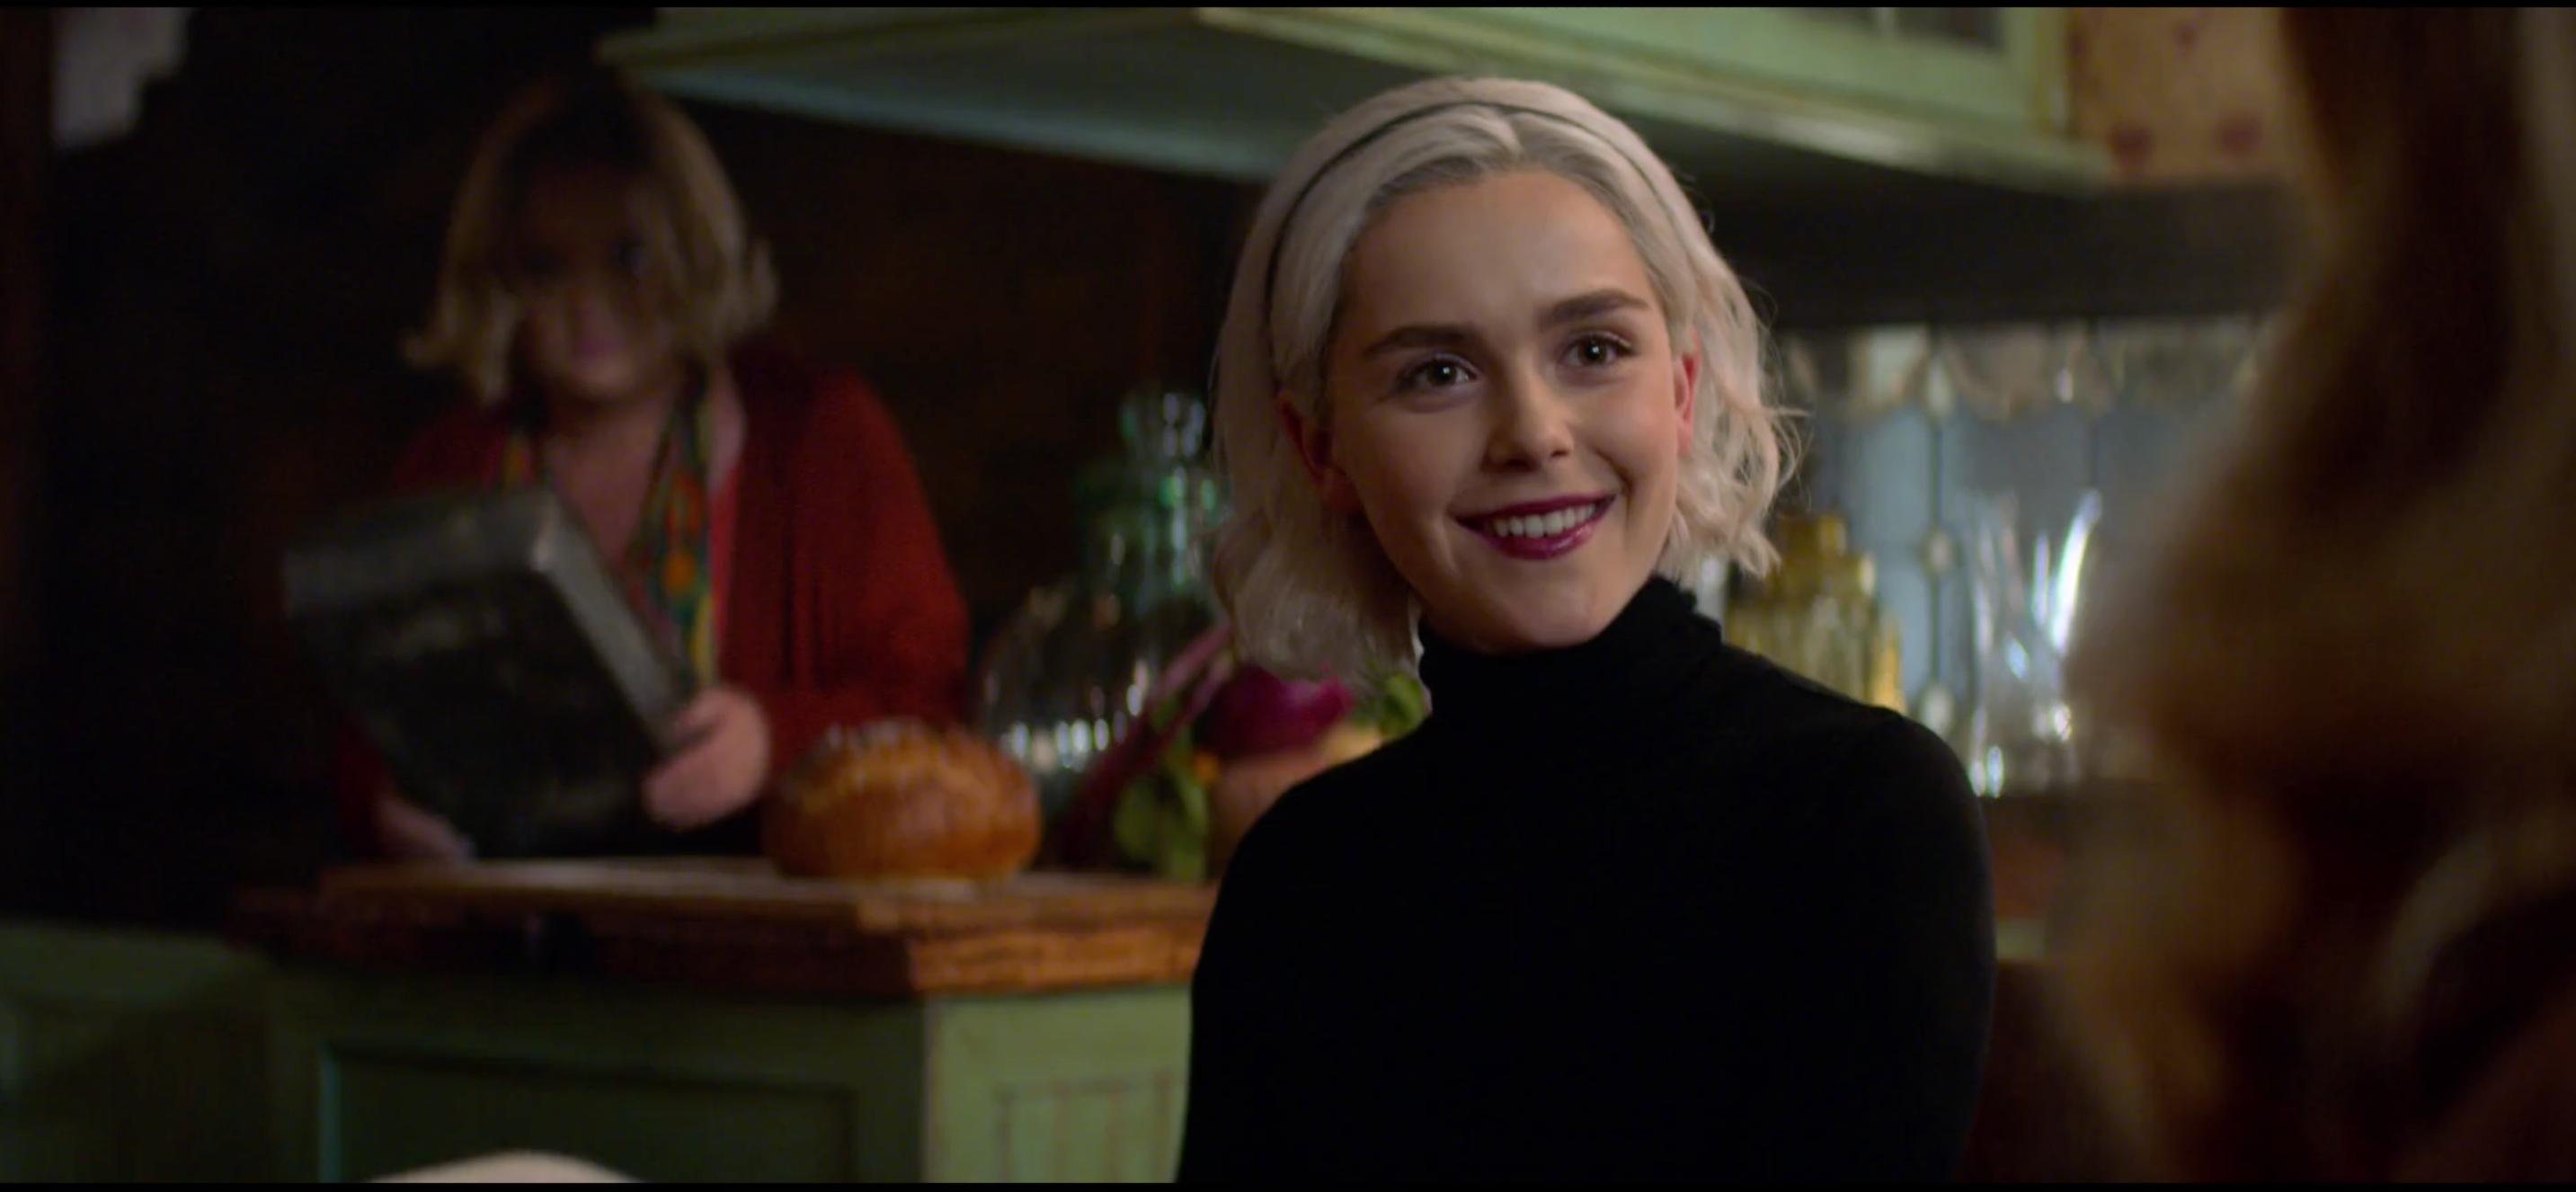 Chilling Adventures Of Sabrina Season 2 Premiere Date